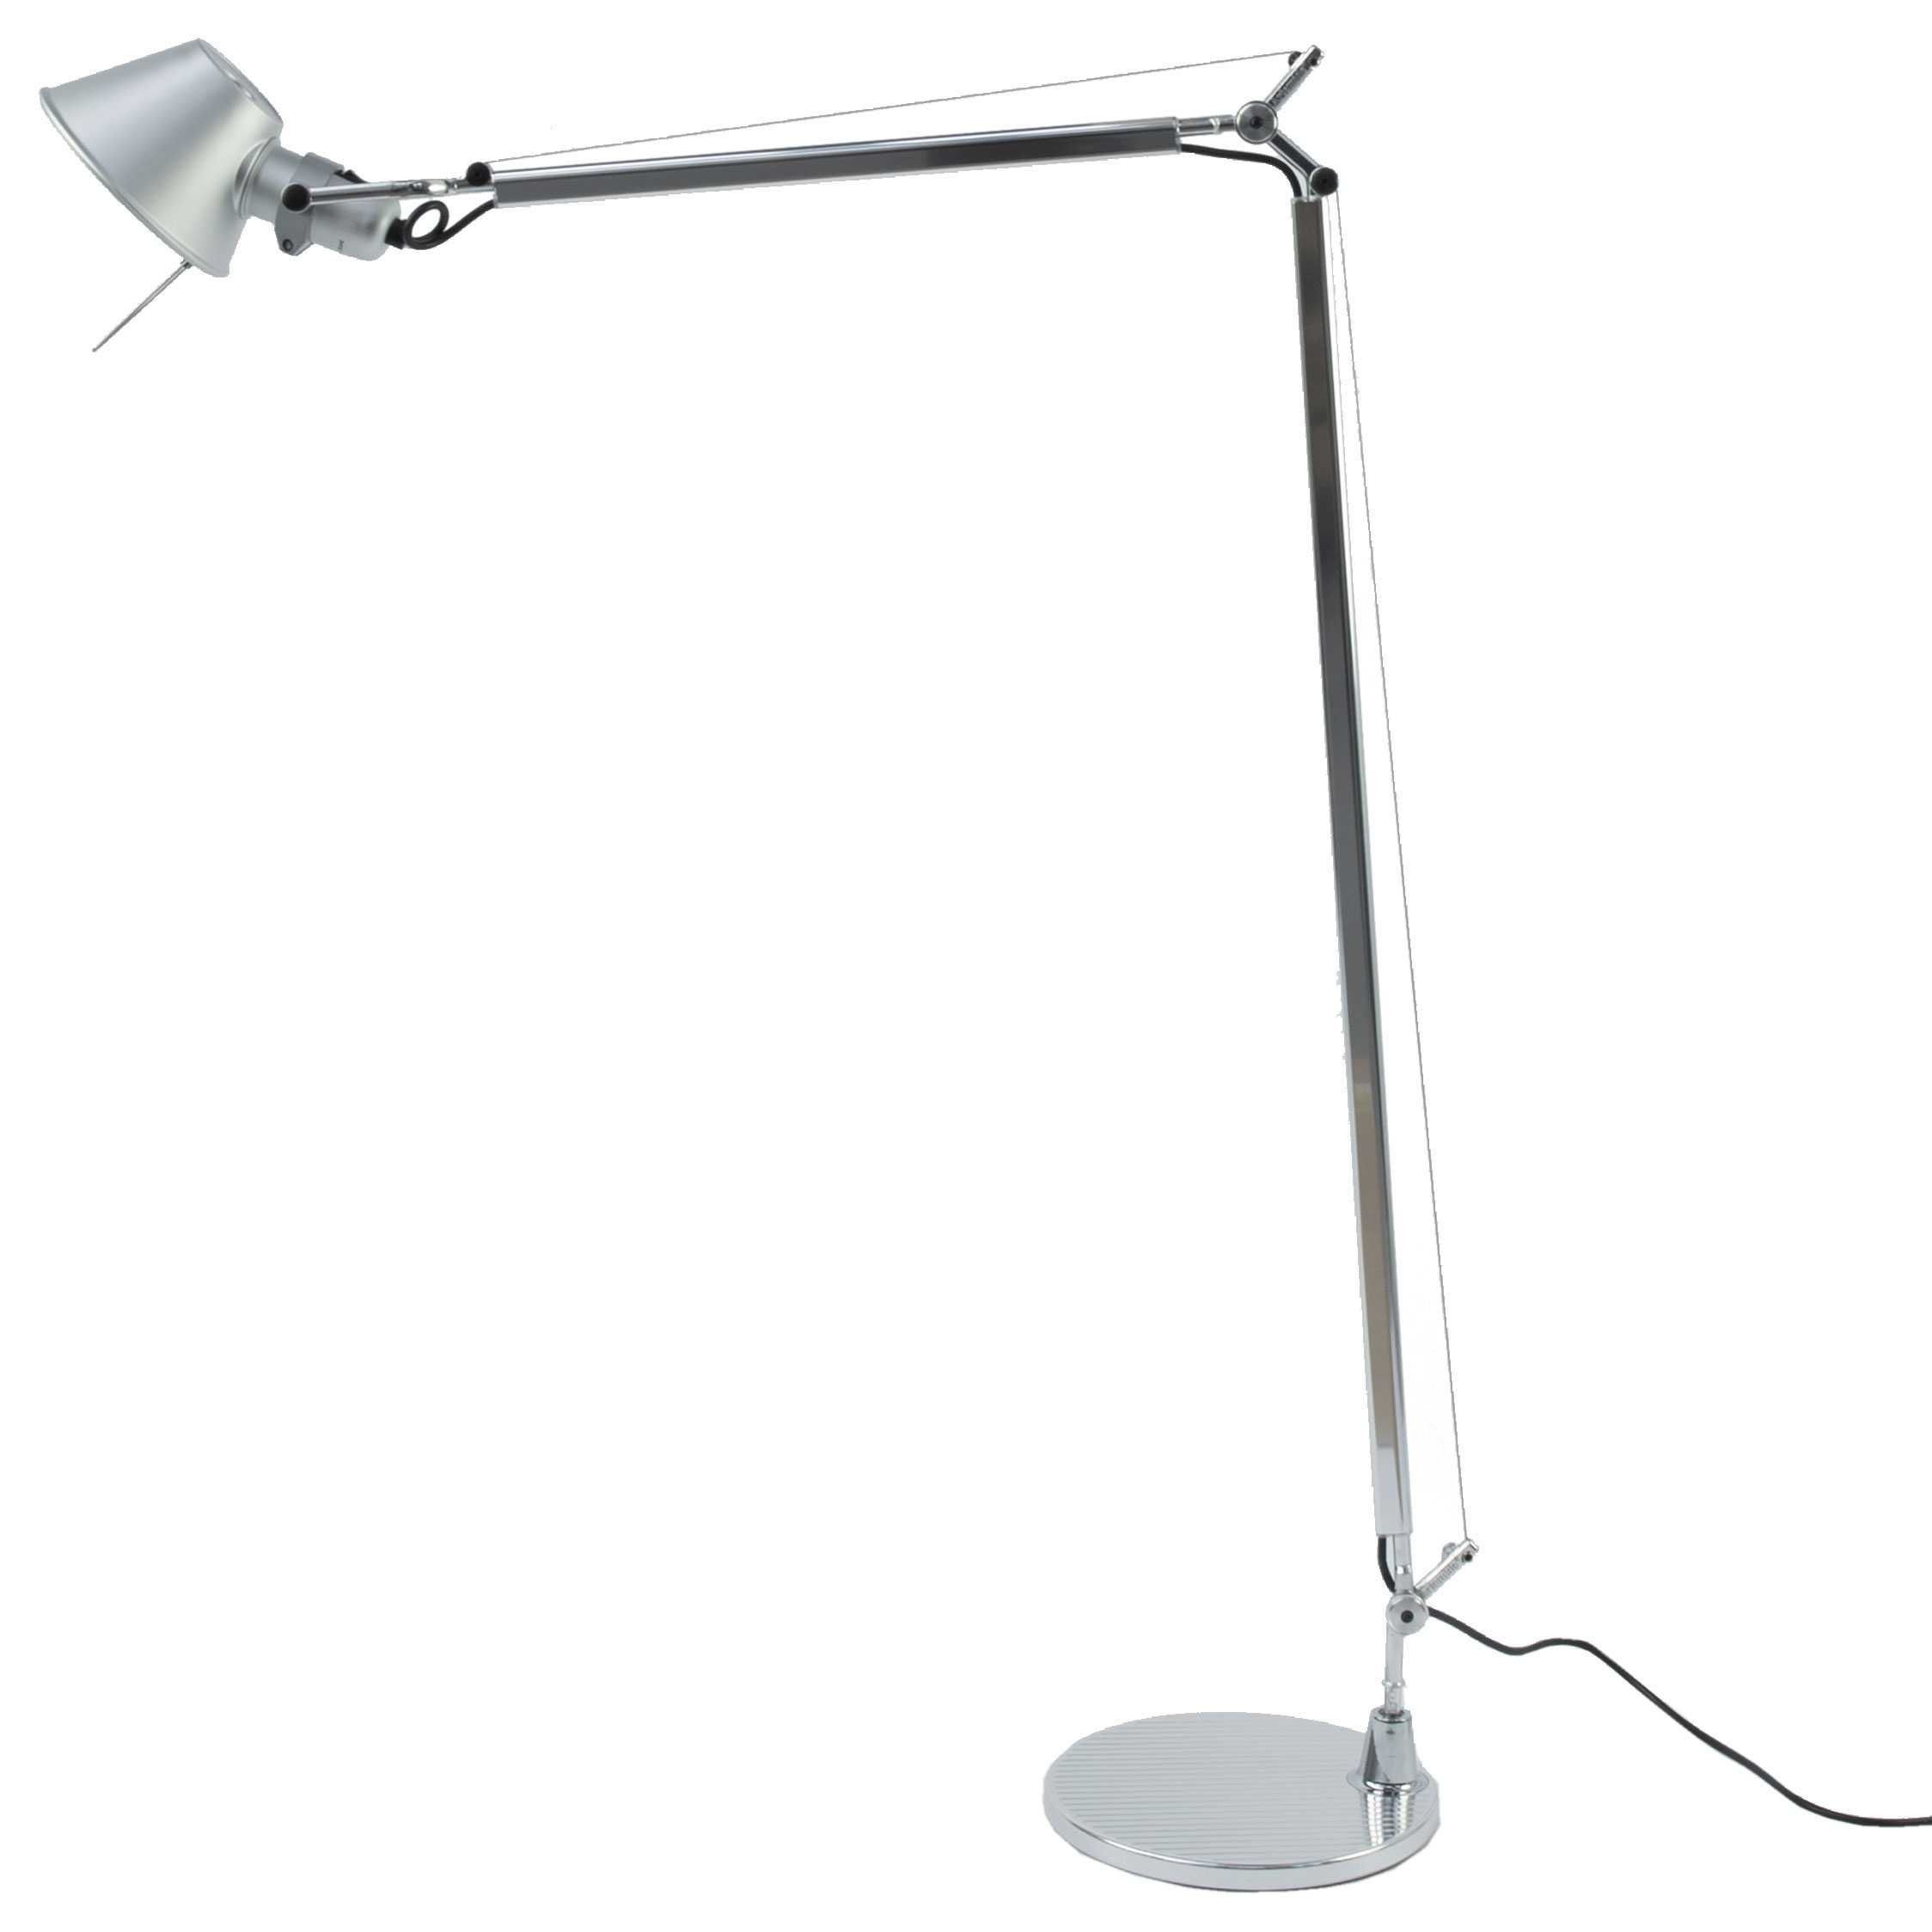 artemide tolomeo lettura vloerlamp led 3000k zacht wit. Black Bedroom Furniture Sets. Home Design Ideas